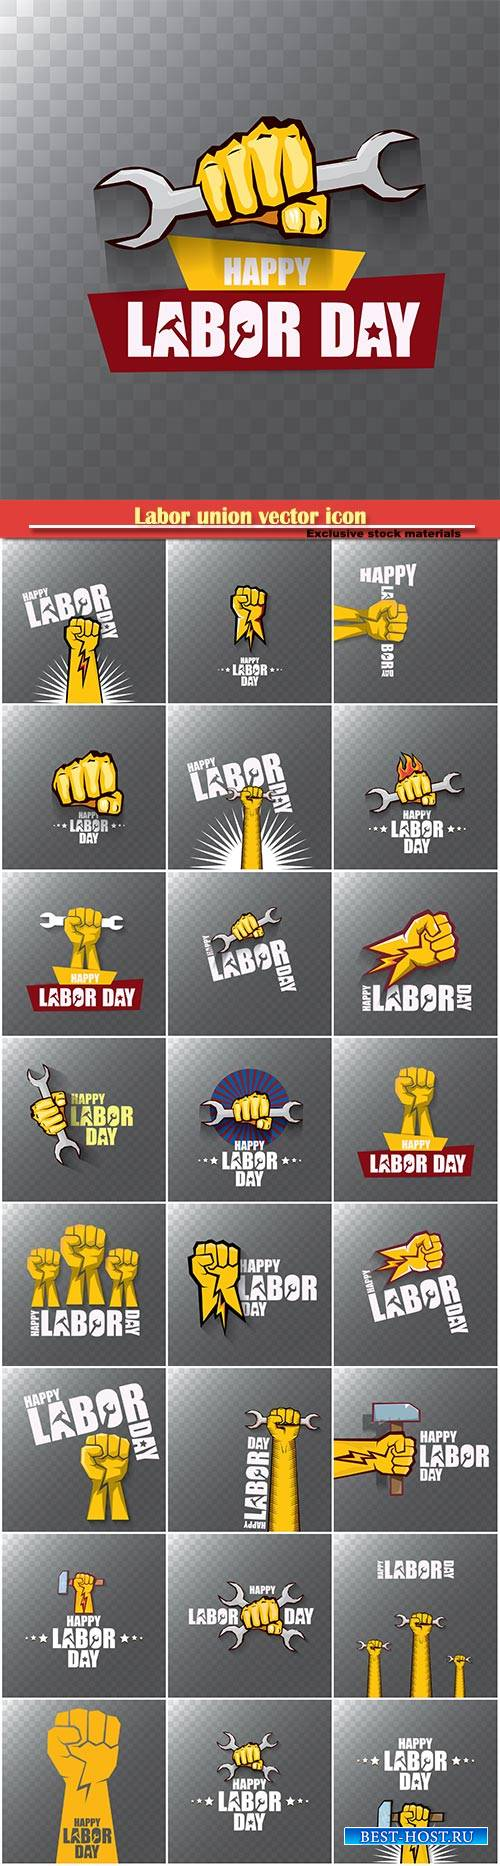 Labor union vector icon, banner with clenched fist isolated on transparent  ...